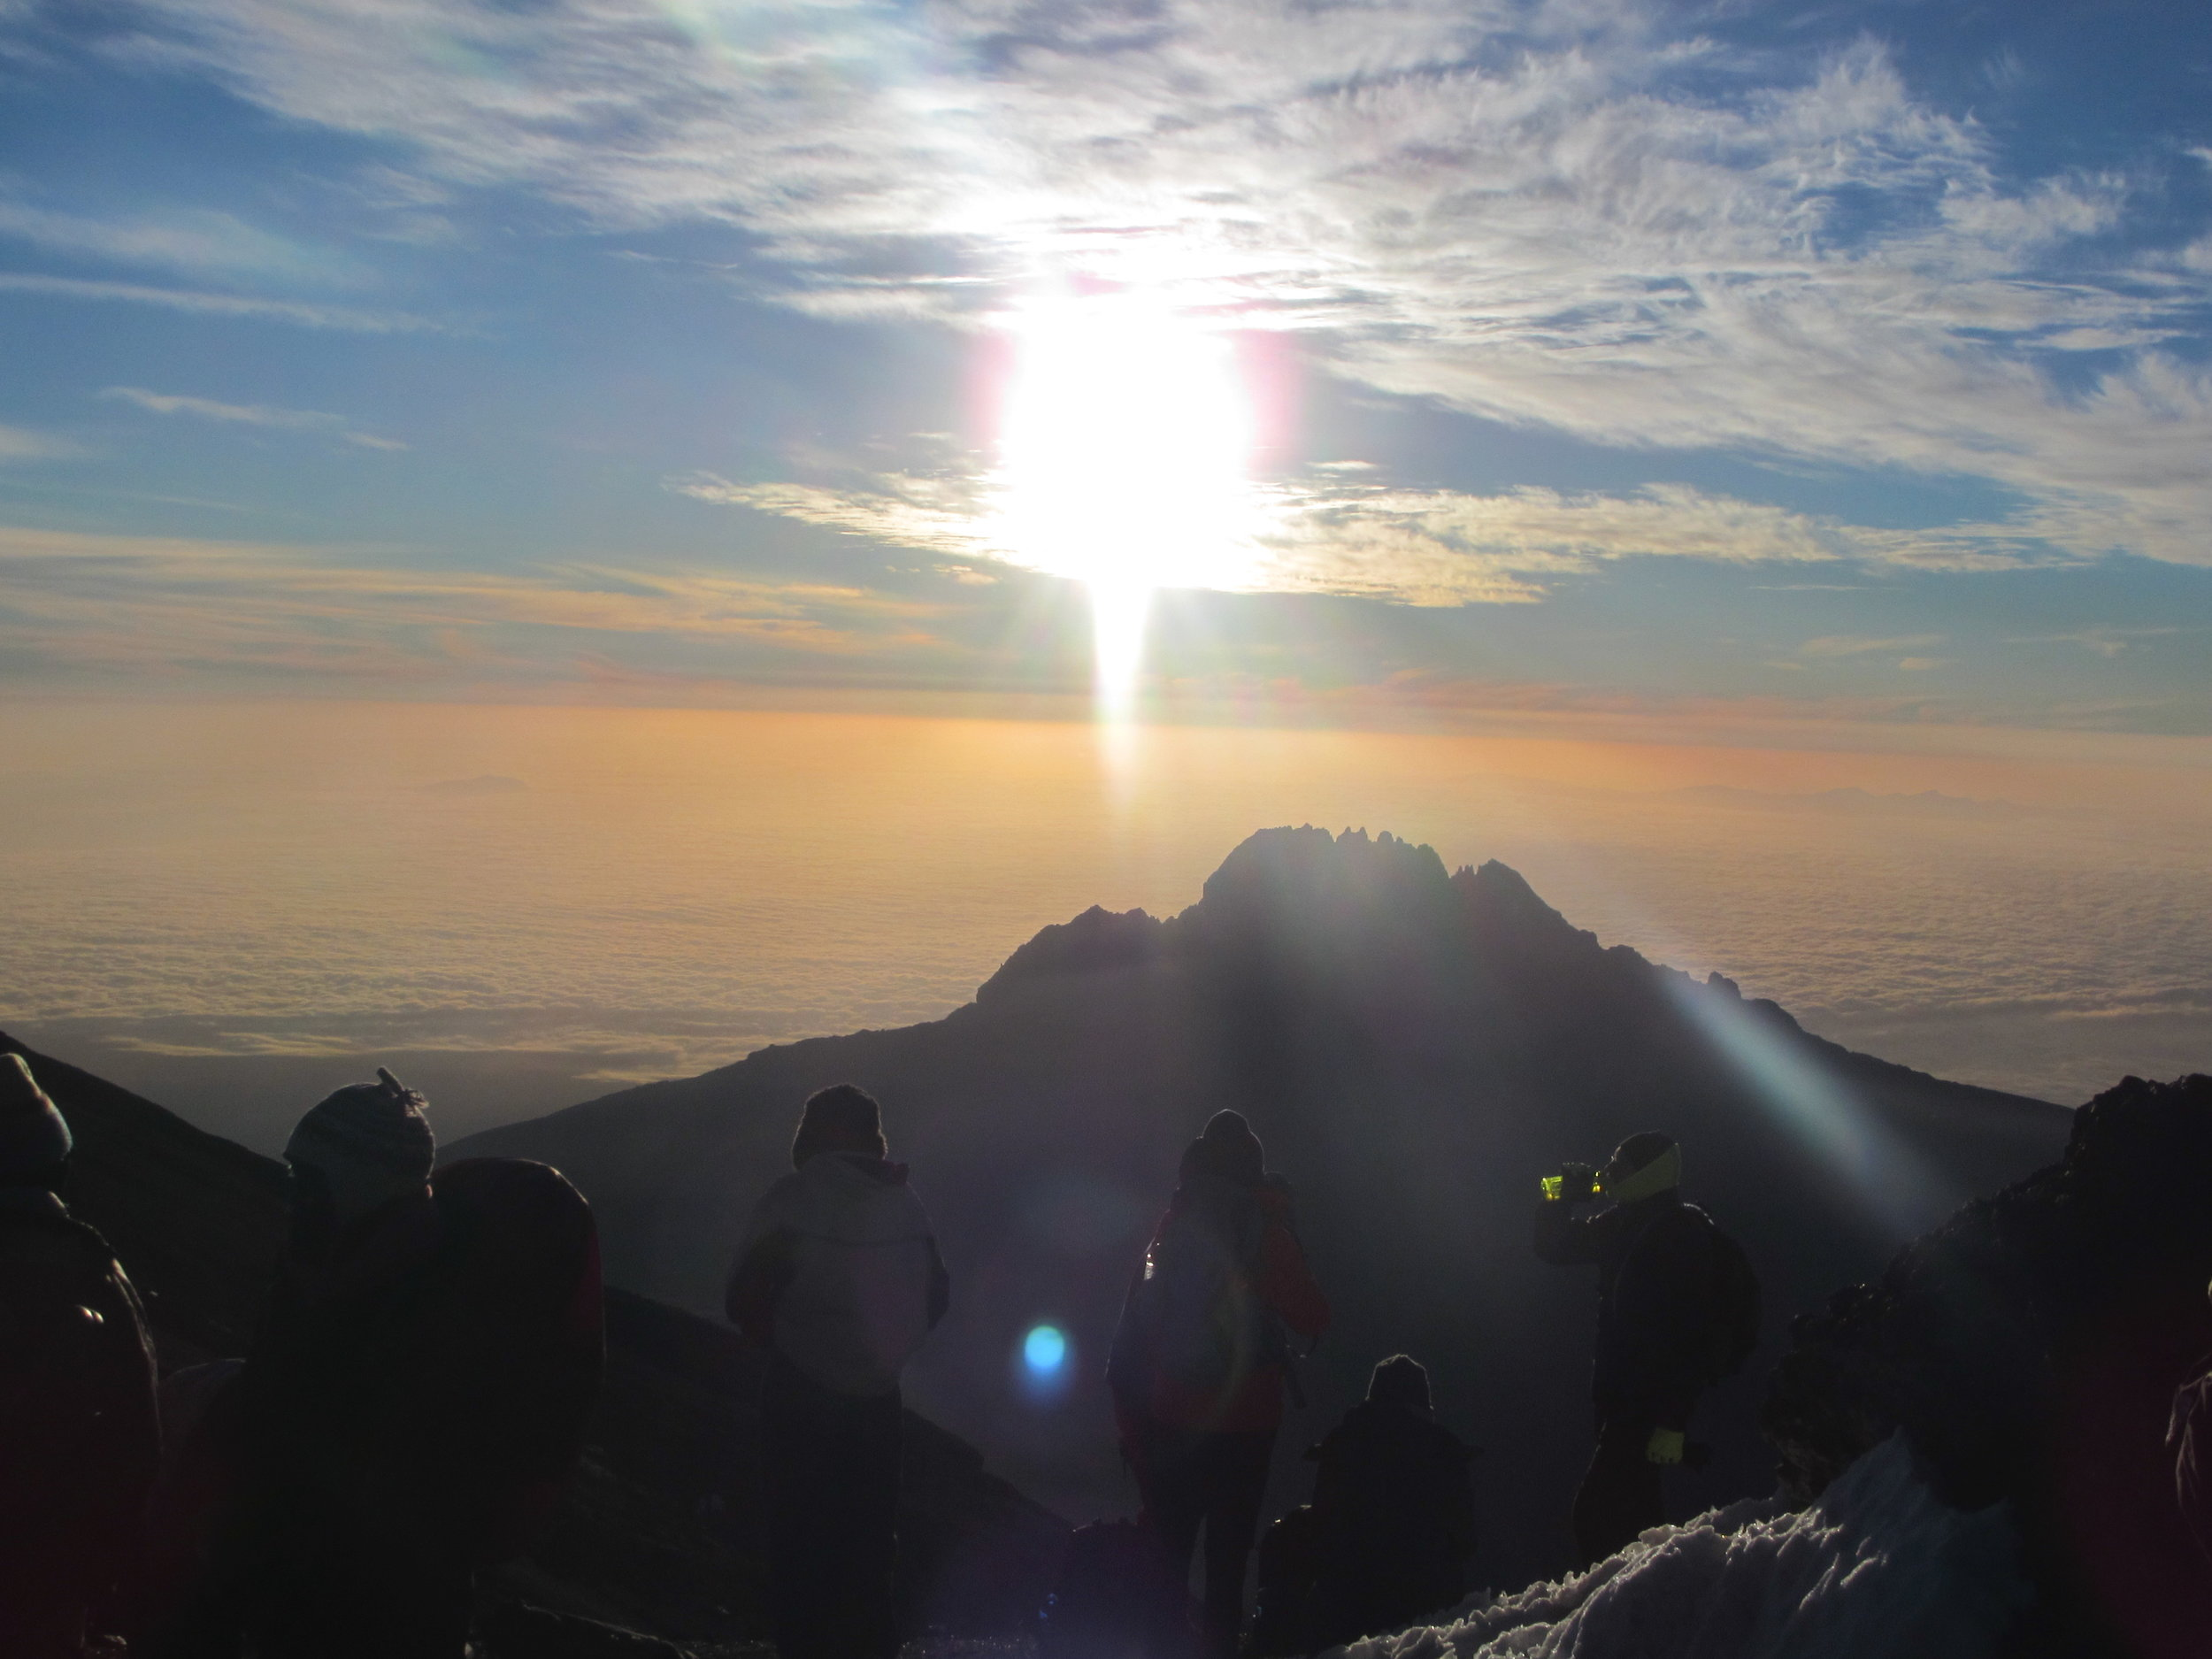 Hiking Mount Kilimanjaro: Day 6 Sunrise at Stella Point